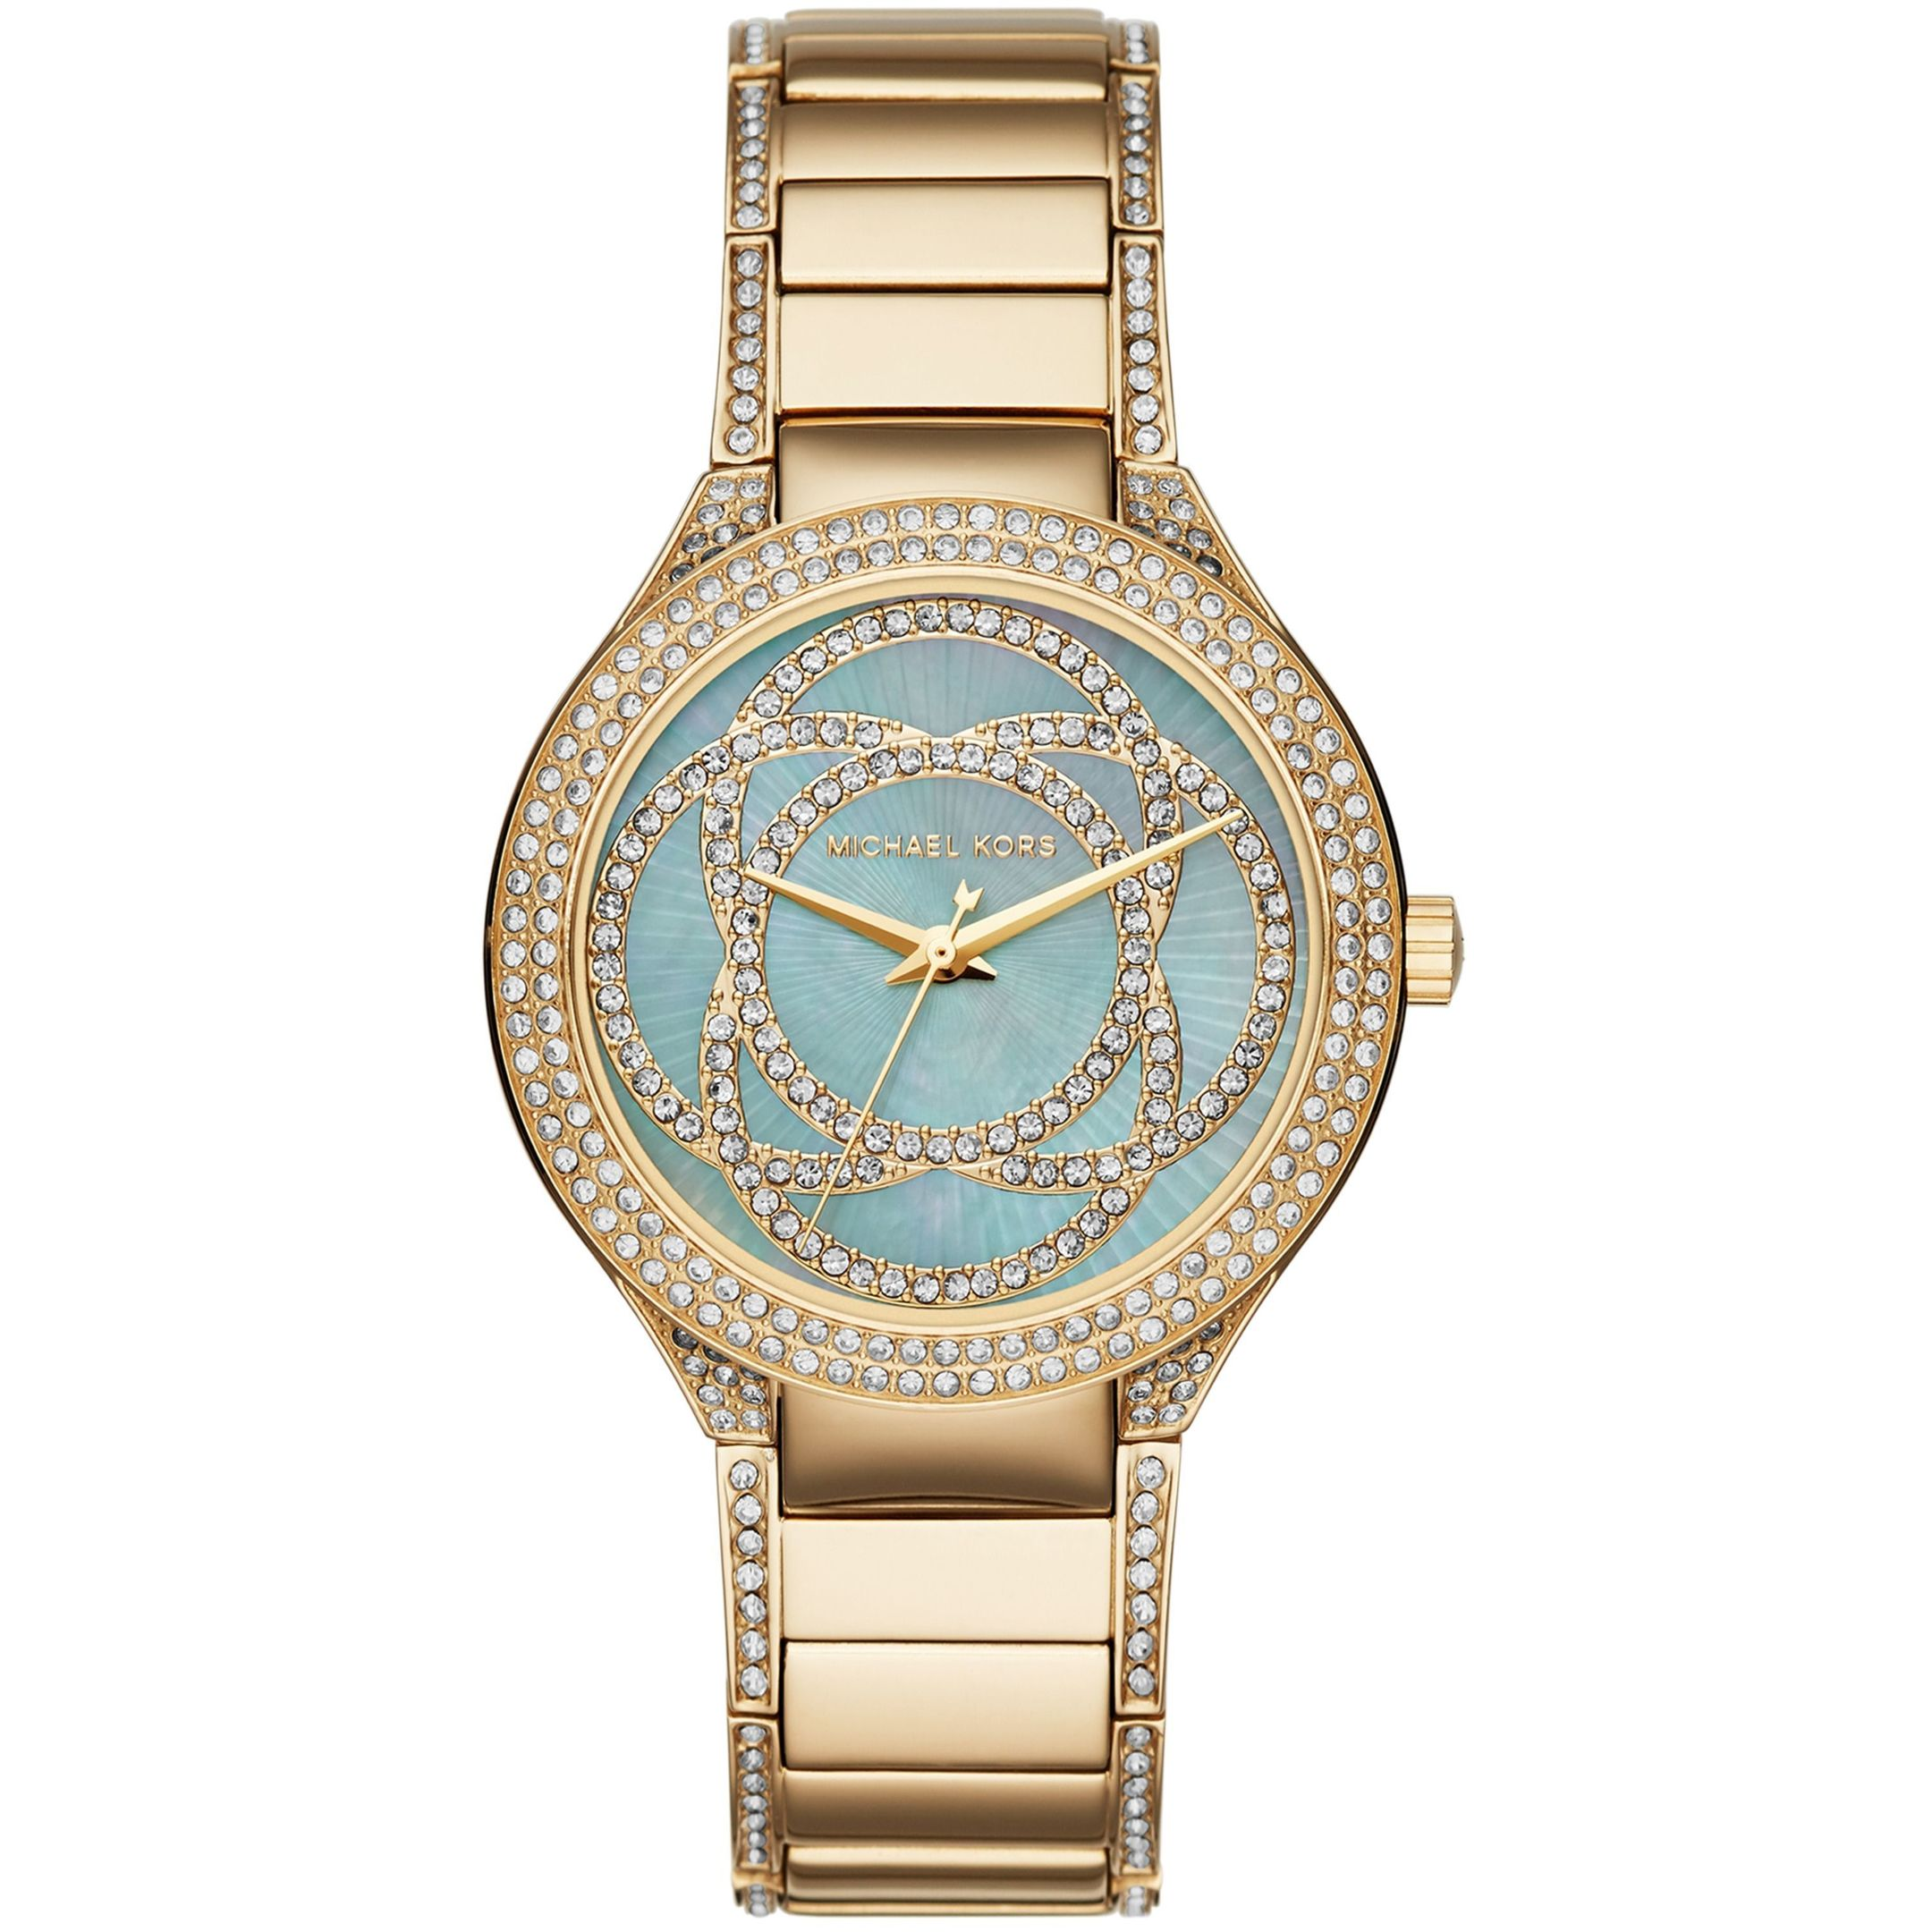 Fashionably on time... Michael Kors Ladies' Kerry Watch, currently £147.00 from £259, Watchshop.com (www.watchshop.com)